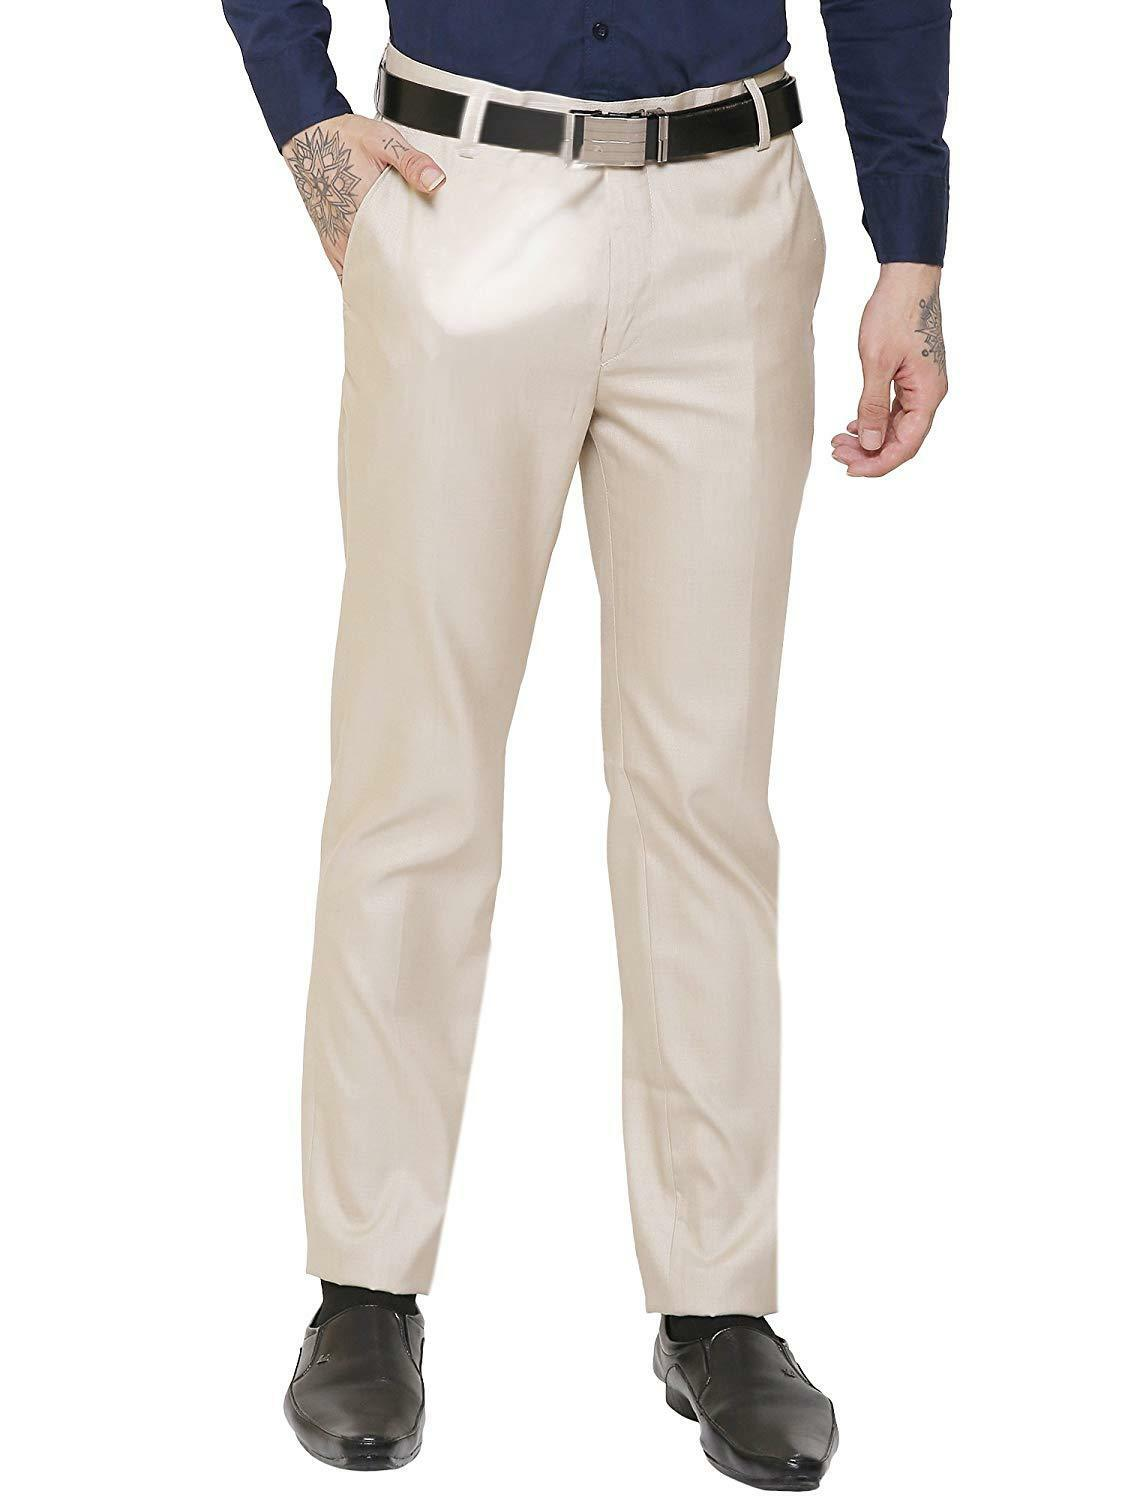 Men Regular Fit Dress Mens Stylish Straight Pants Business Elegant Shiny Trouser